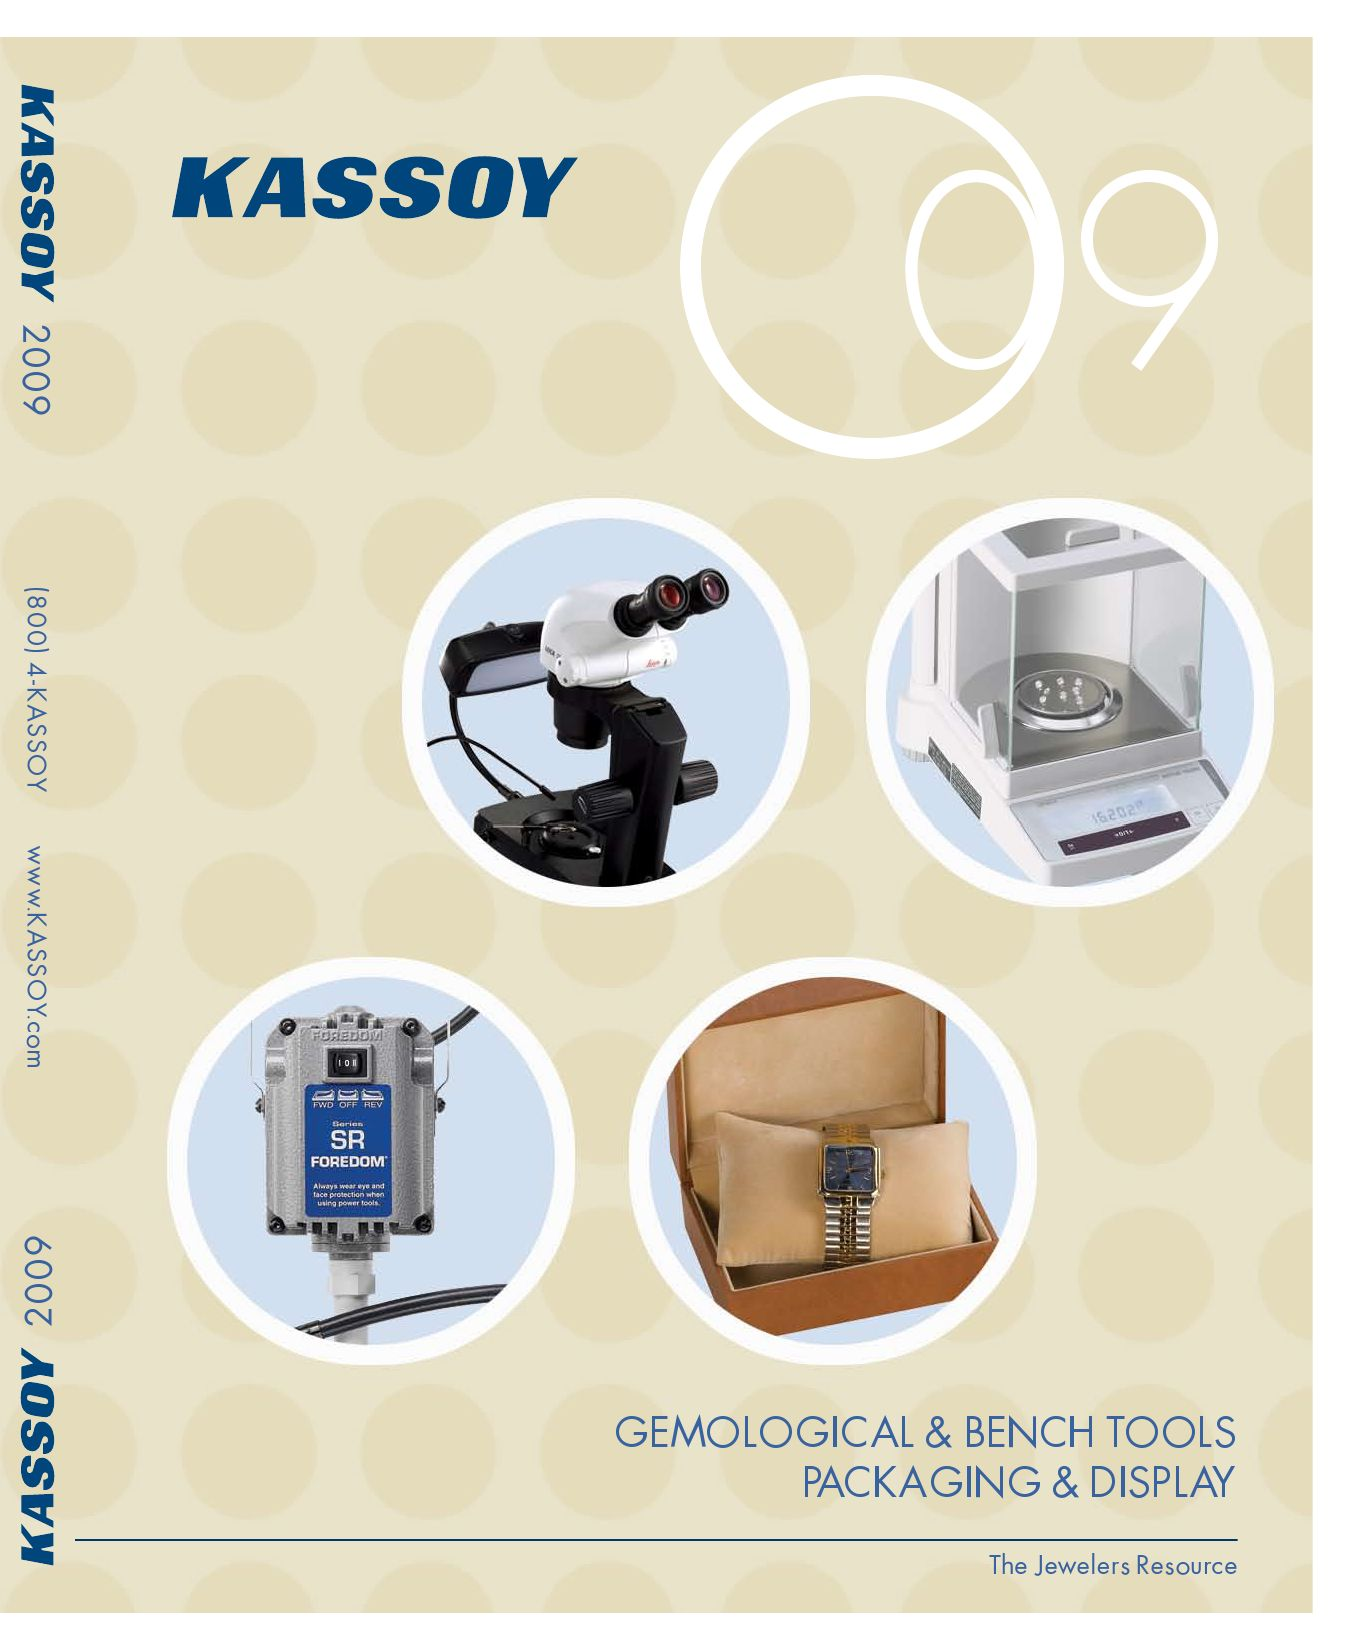 Kassoy 2009 Catalog By Llc Issuu Guage Ts 45t Baldor Wiring Diagram